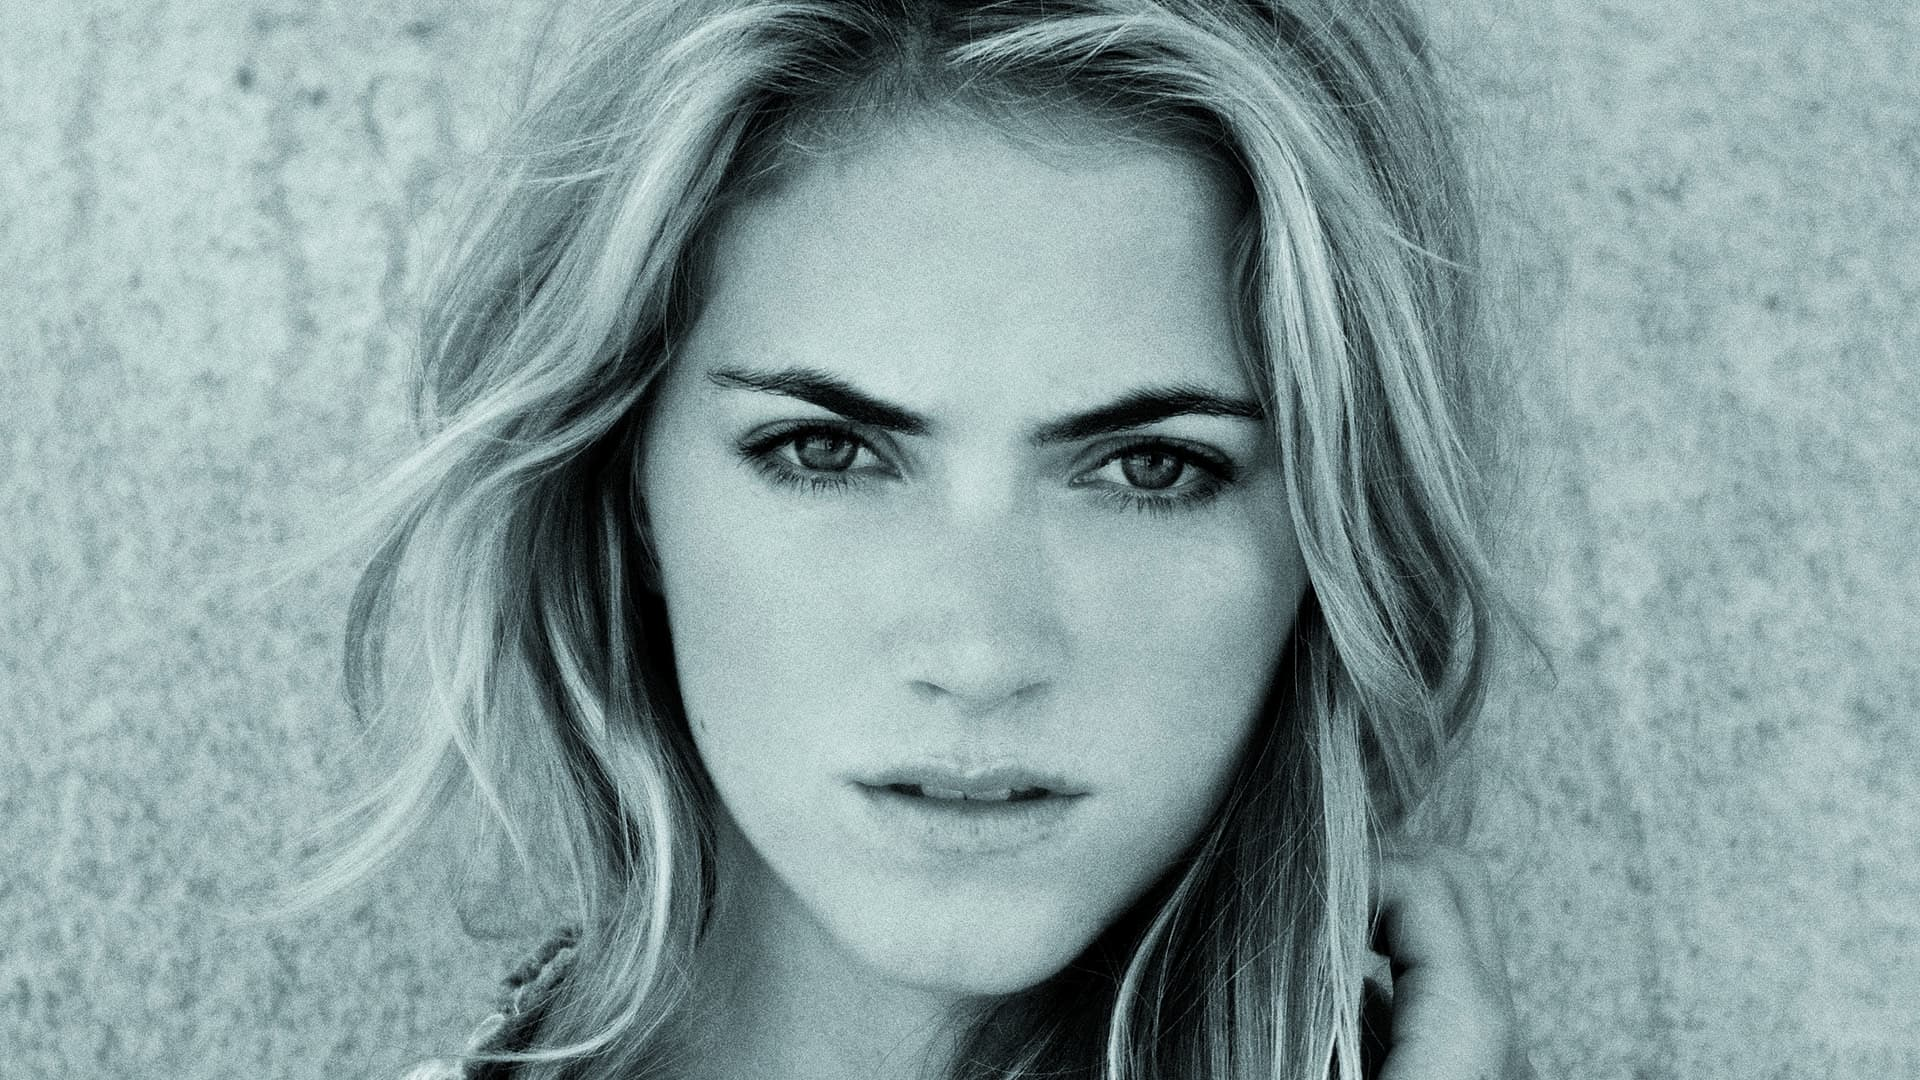 Emily Wickersham picture HD black and white